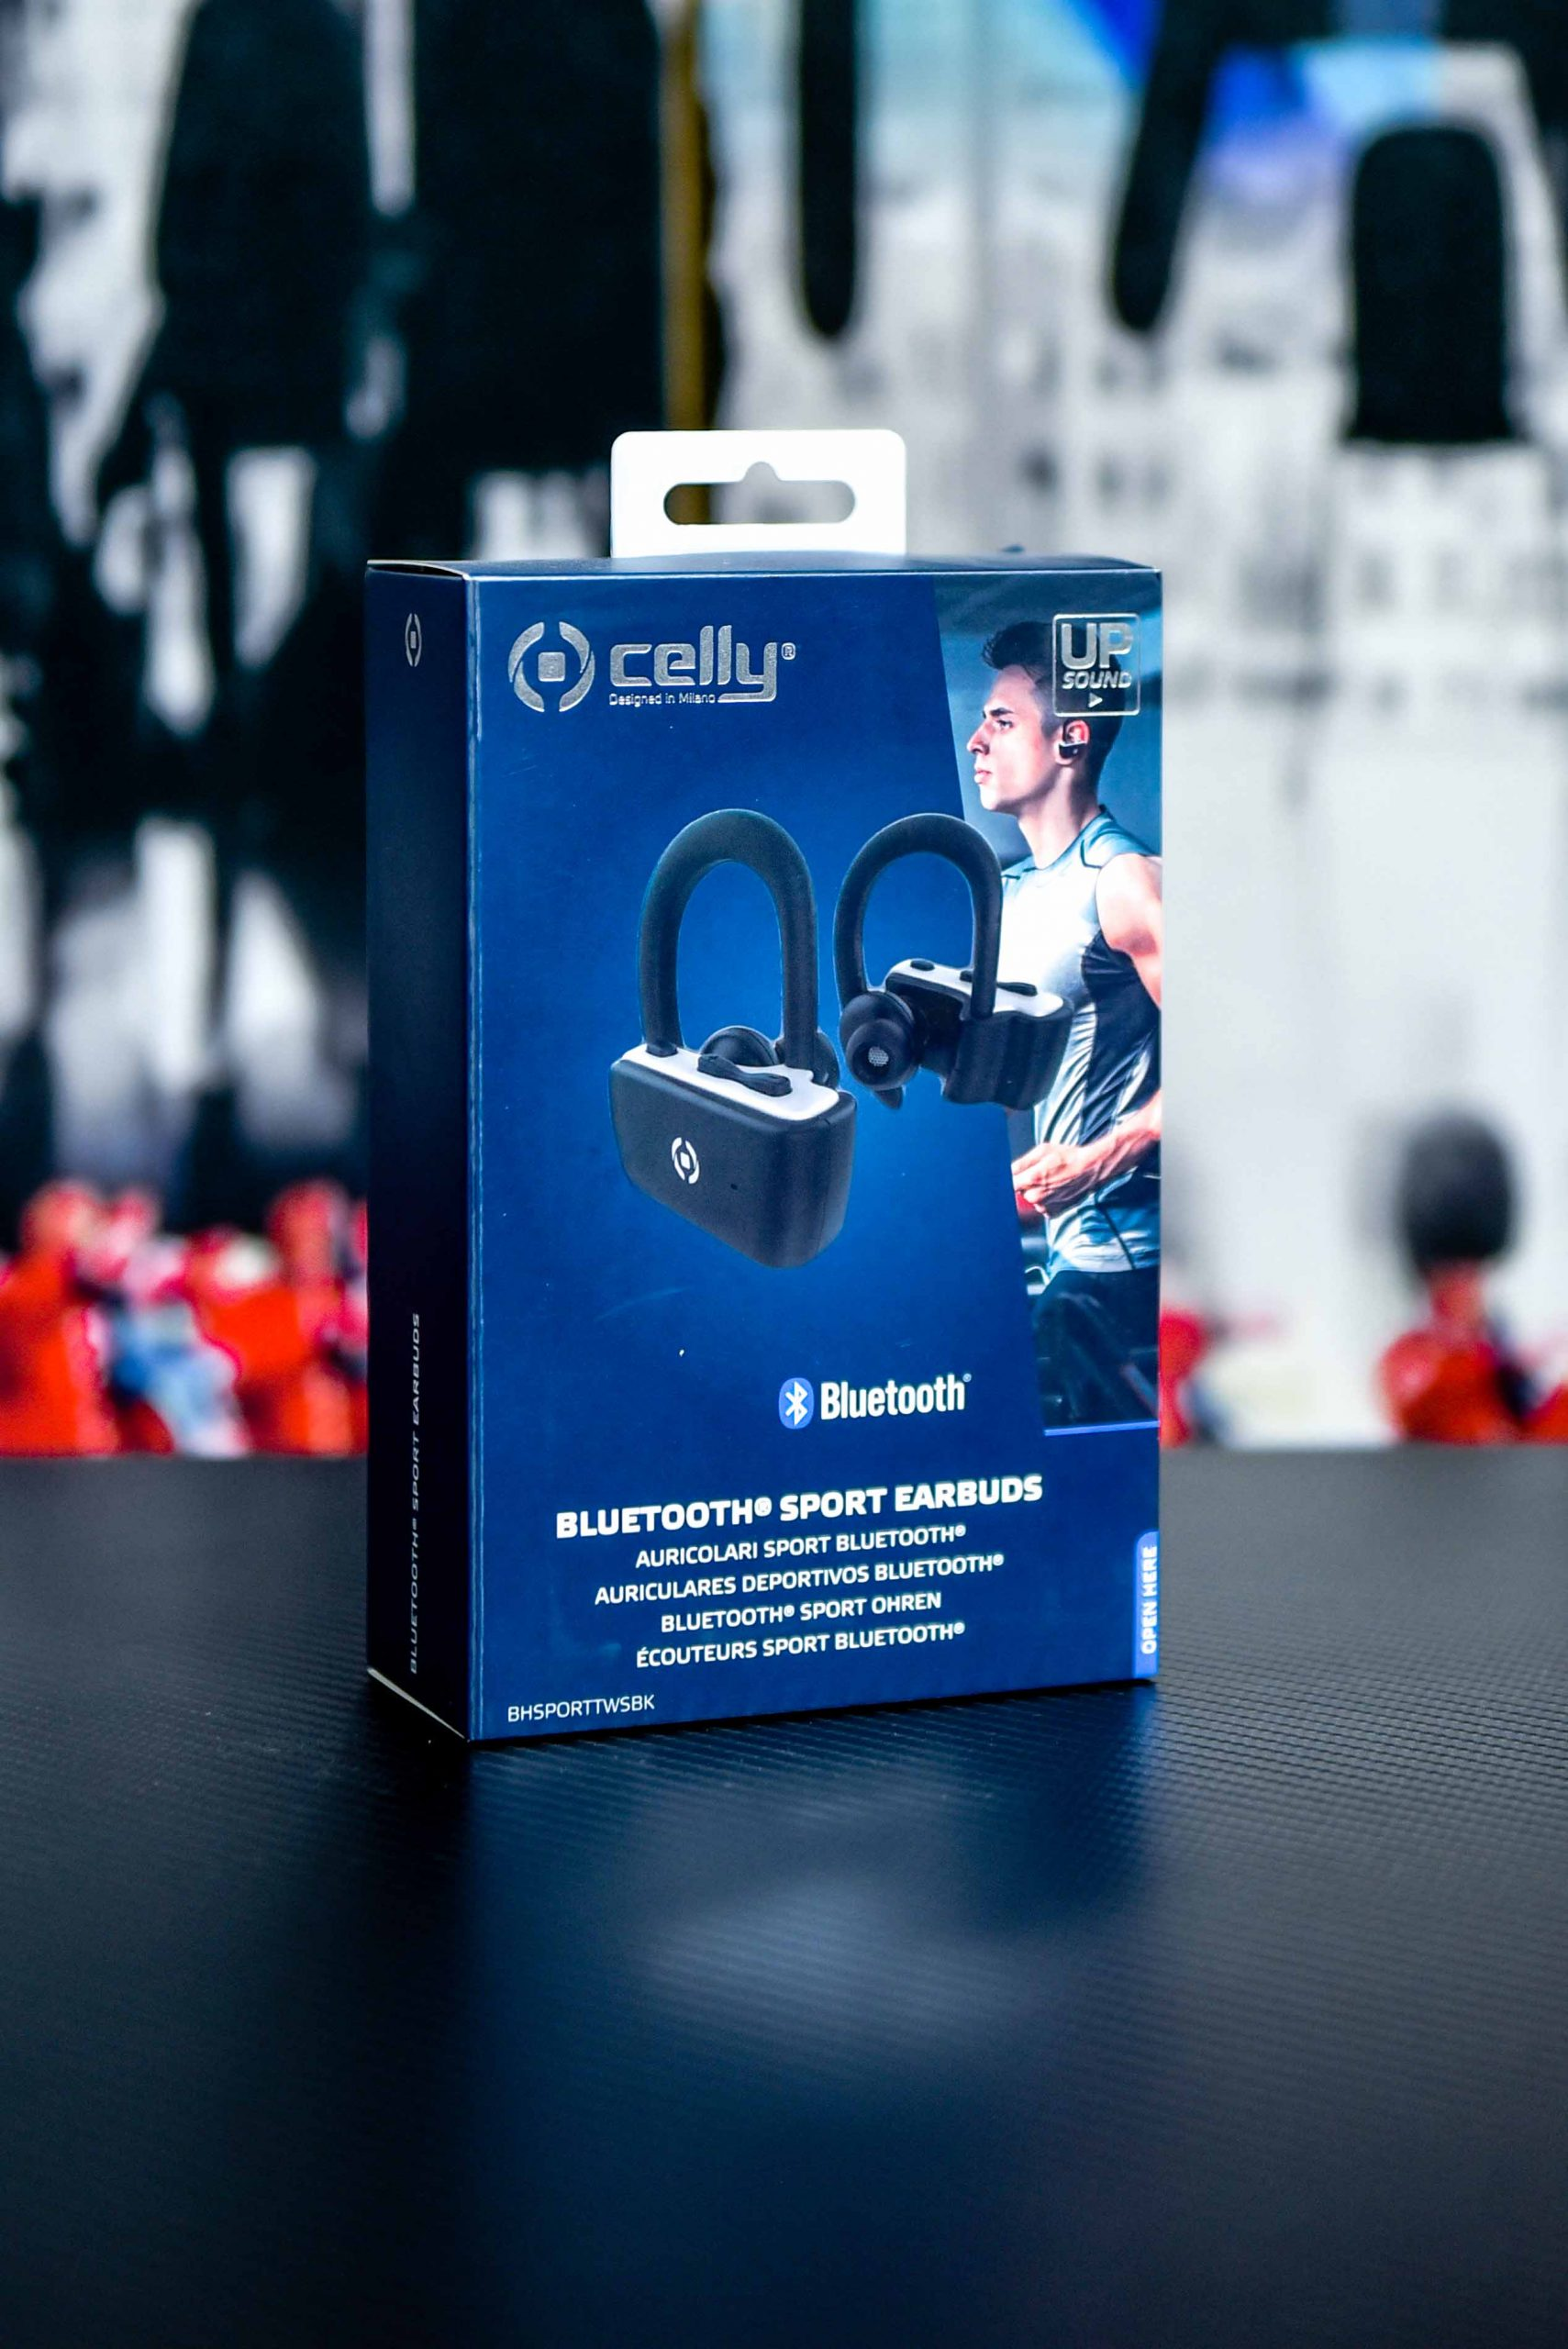 Celly Bluetooth Earbuds in Qatar